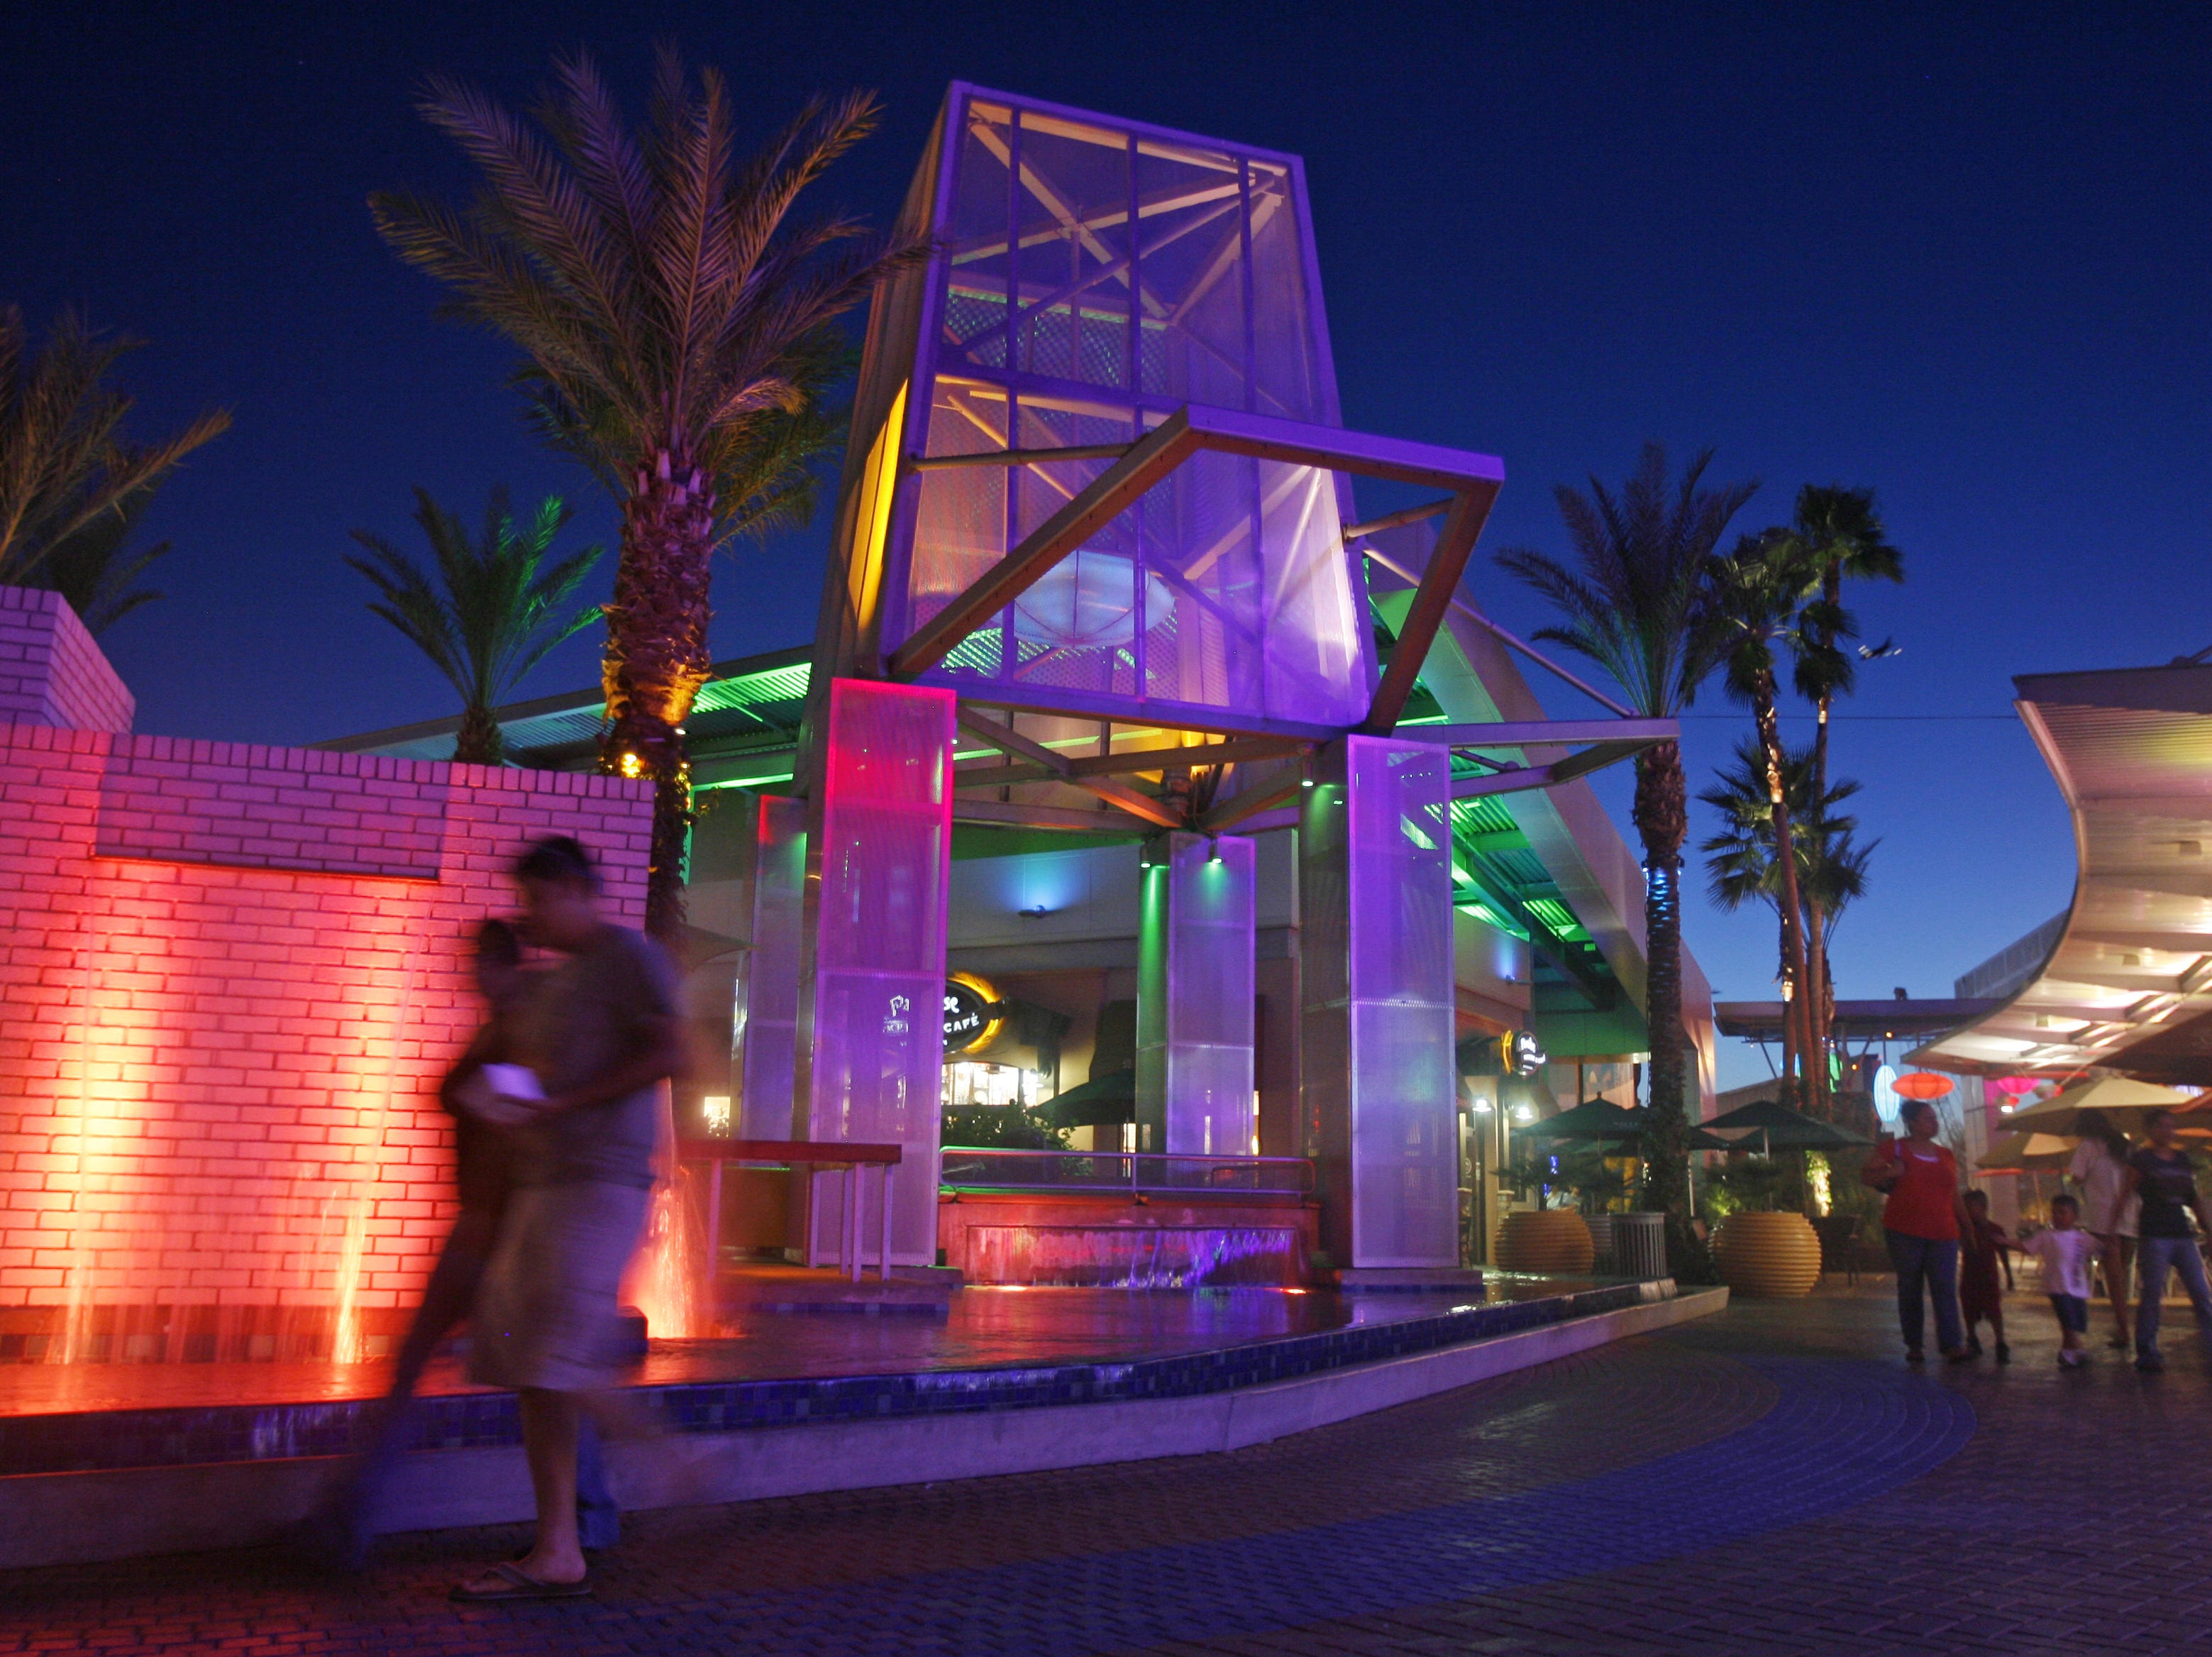 TEMPE MARKETPLACE: Several restaurants are offering spring training deals. A sample: Auntie Anne's (20 percent off your purchase); Bar Louie, Thirsty Lion and California Pizza Kitchen (20 percent off, excluding alcohol); Genghis Grill ($2 Bud Light drafts, $2 well drinks, $2 mimosas); Kabuki (15 percent off, excluding alcohol, sushi party platters or the sushi table); King's Fish House (free appetizer with a $25 purchase): Lucille's Smokehouse BBQ ($5 off a $20 purchase); Mojo Yogurt (25 percent off); Portillo's (buy one sandwich with a side and drink, get a free sandwich); The Keg Steakhouse + Bar (buy one entree, get one free through March 31); Yogis Grill (get a free egg roll or sushi appetizer).